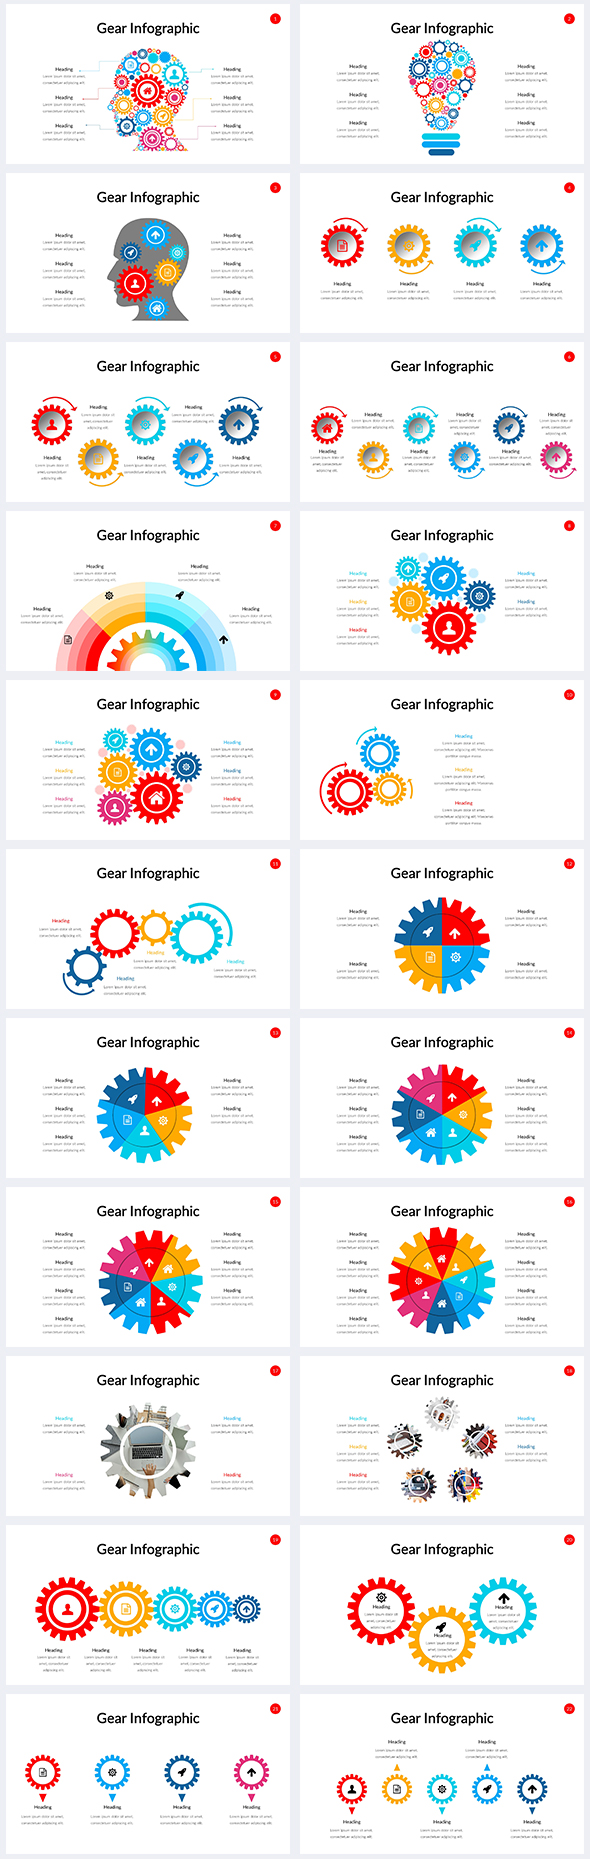 Gear-Infographic-Power-Point-Template